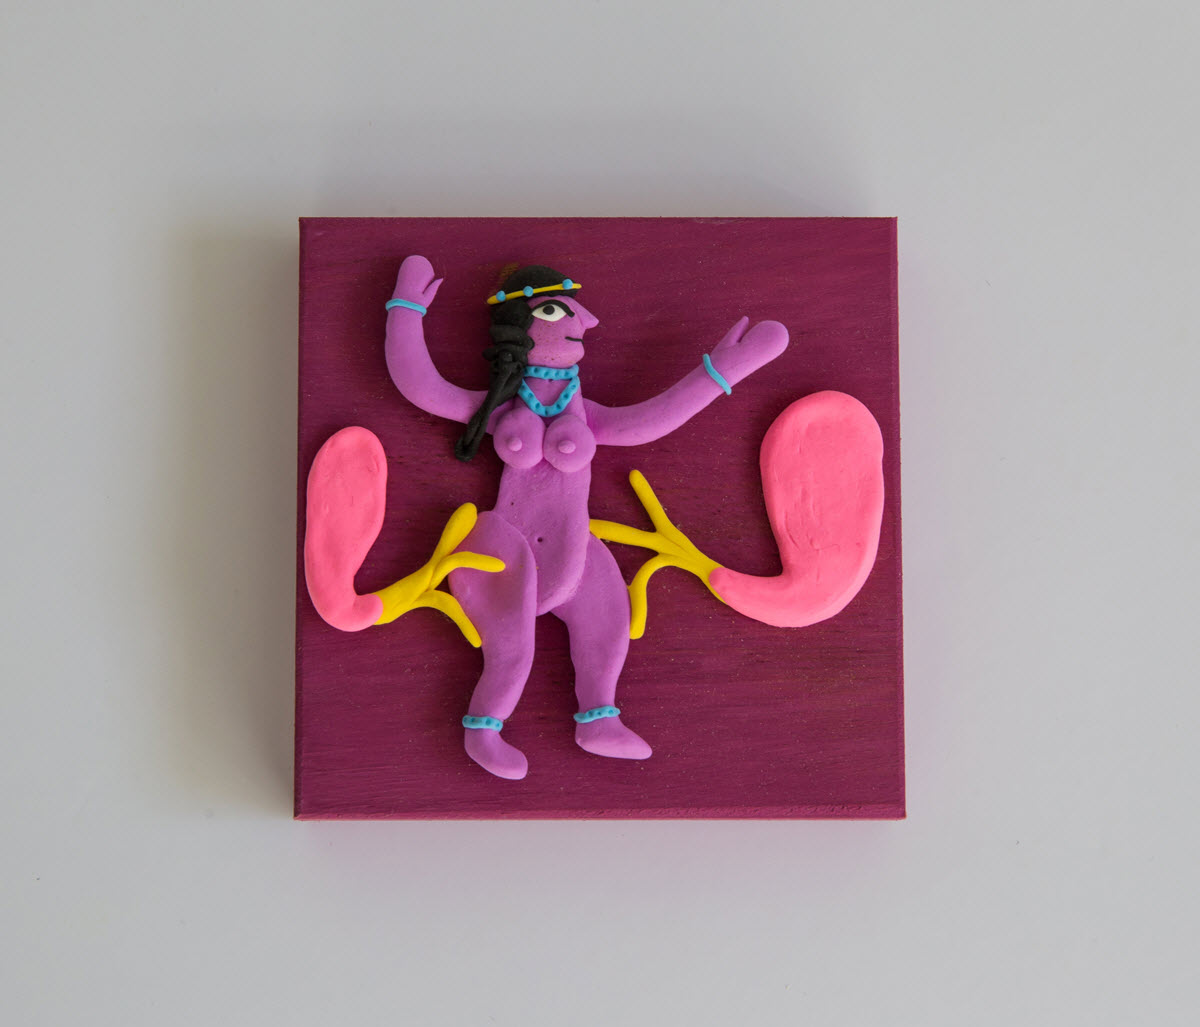 Petit Relief | Sculpture / 2014